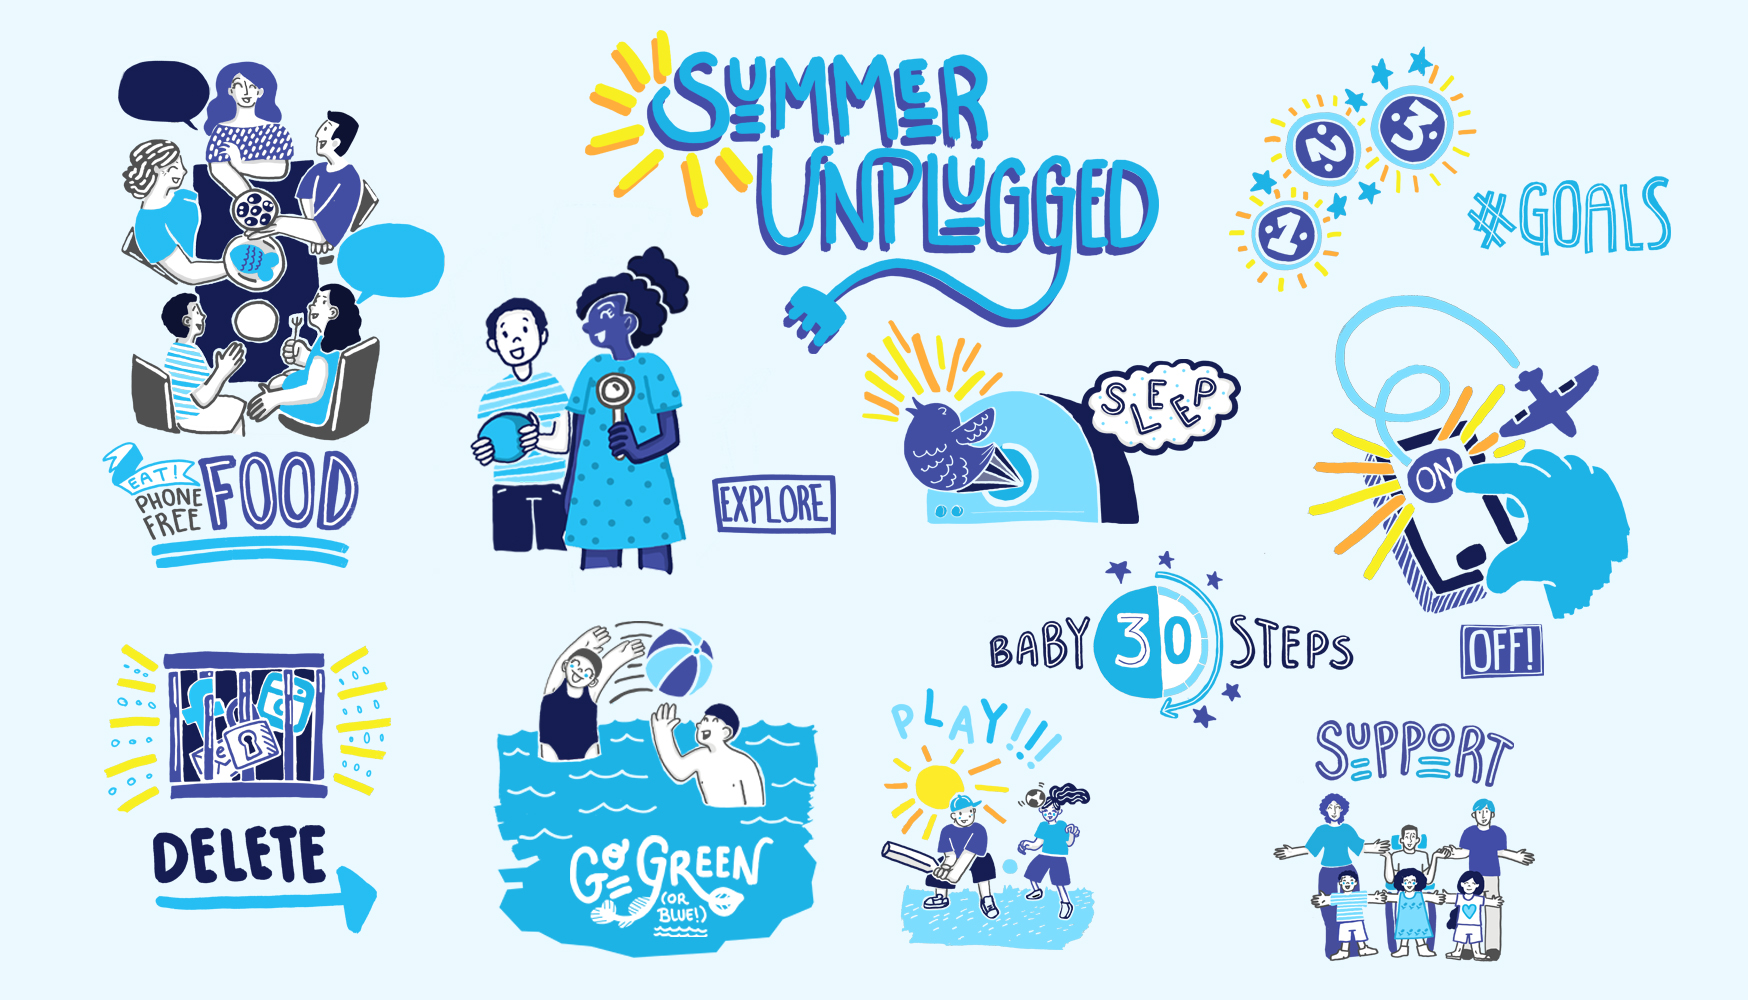 digital detox challenge summer unplugged